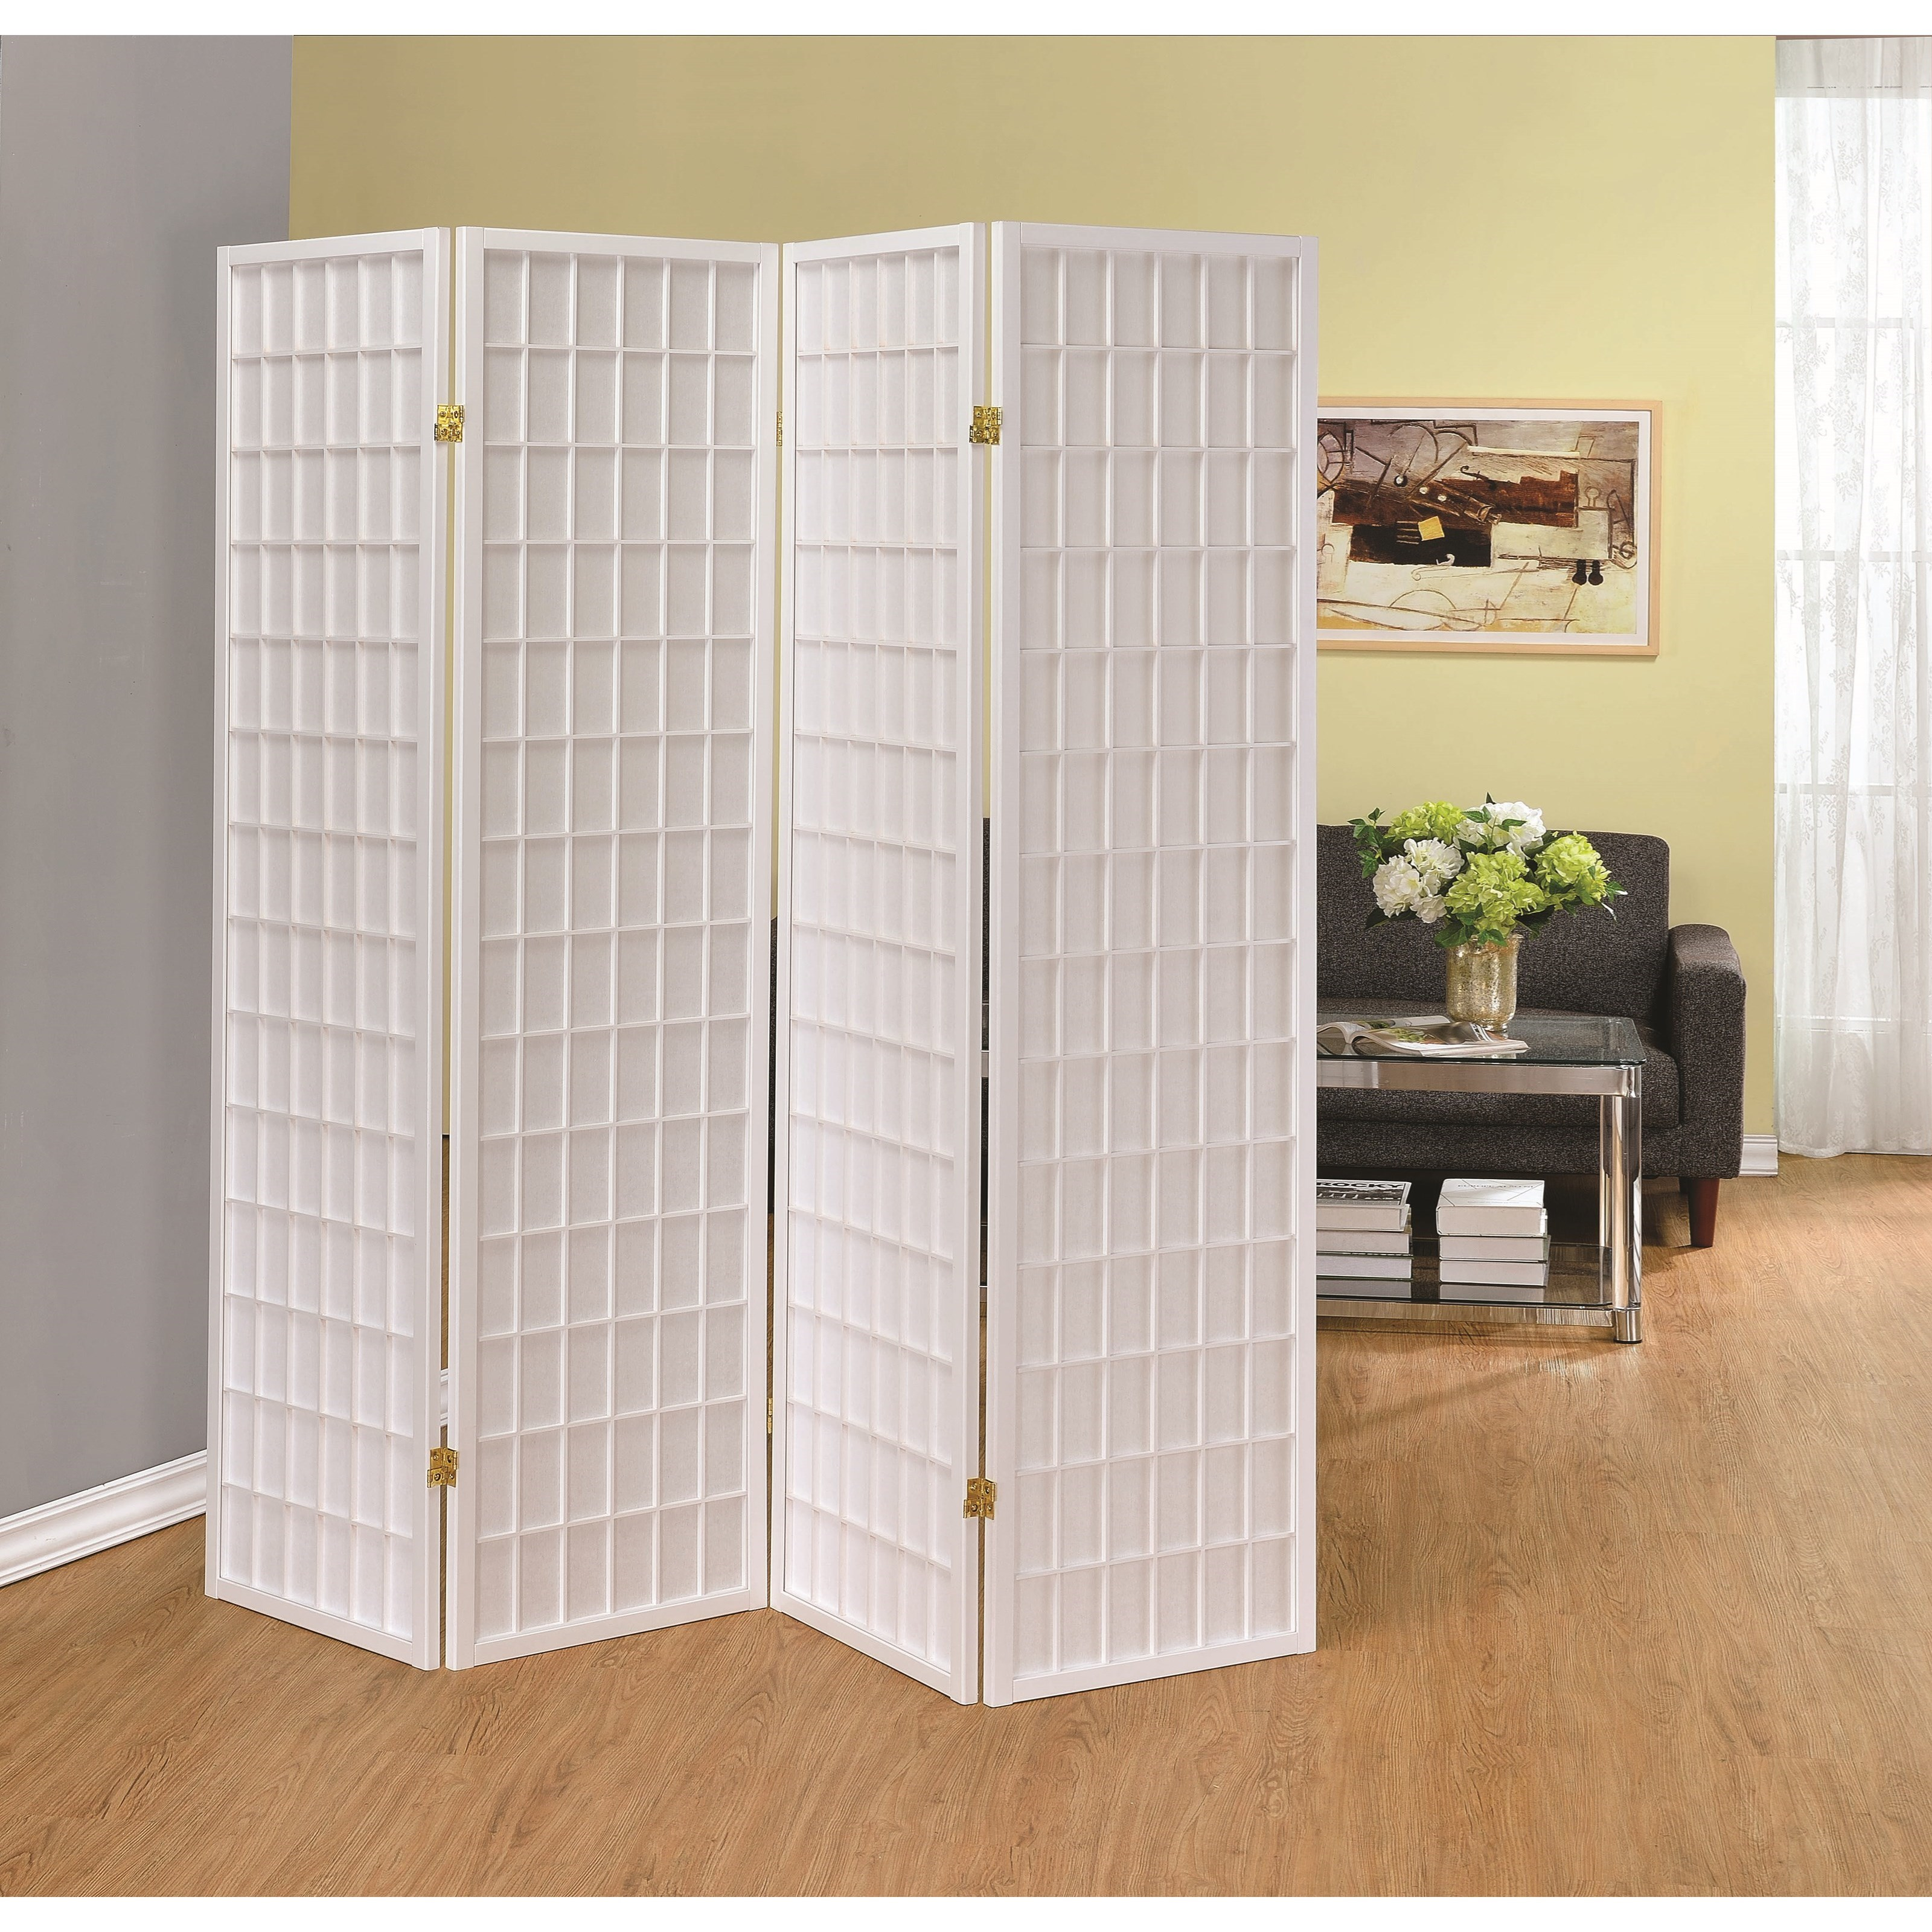 Coaster folding screens 902626 four panel white folding for Four panel room divider screen